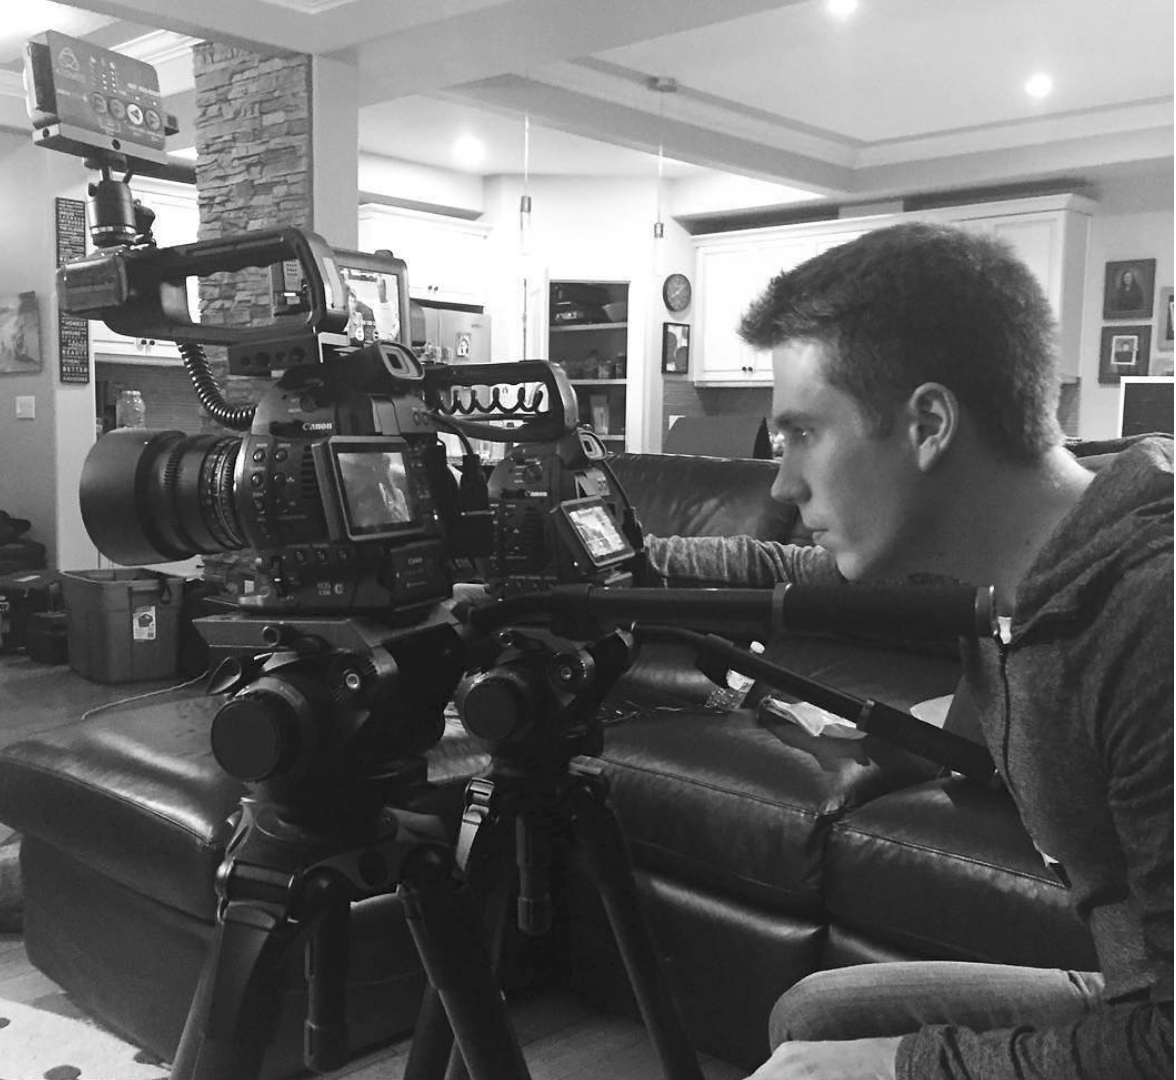 Justin Kueber setting up the two Canon c100 cameras.